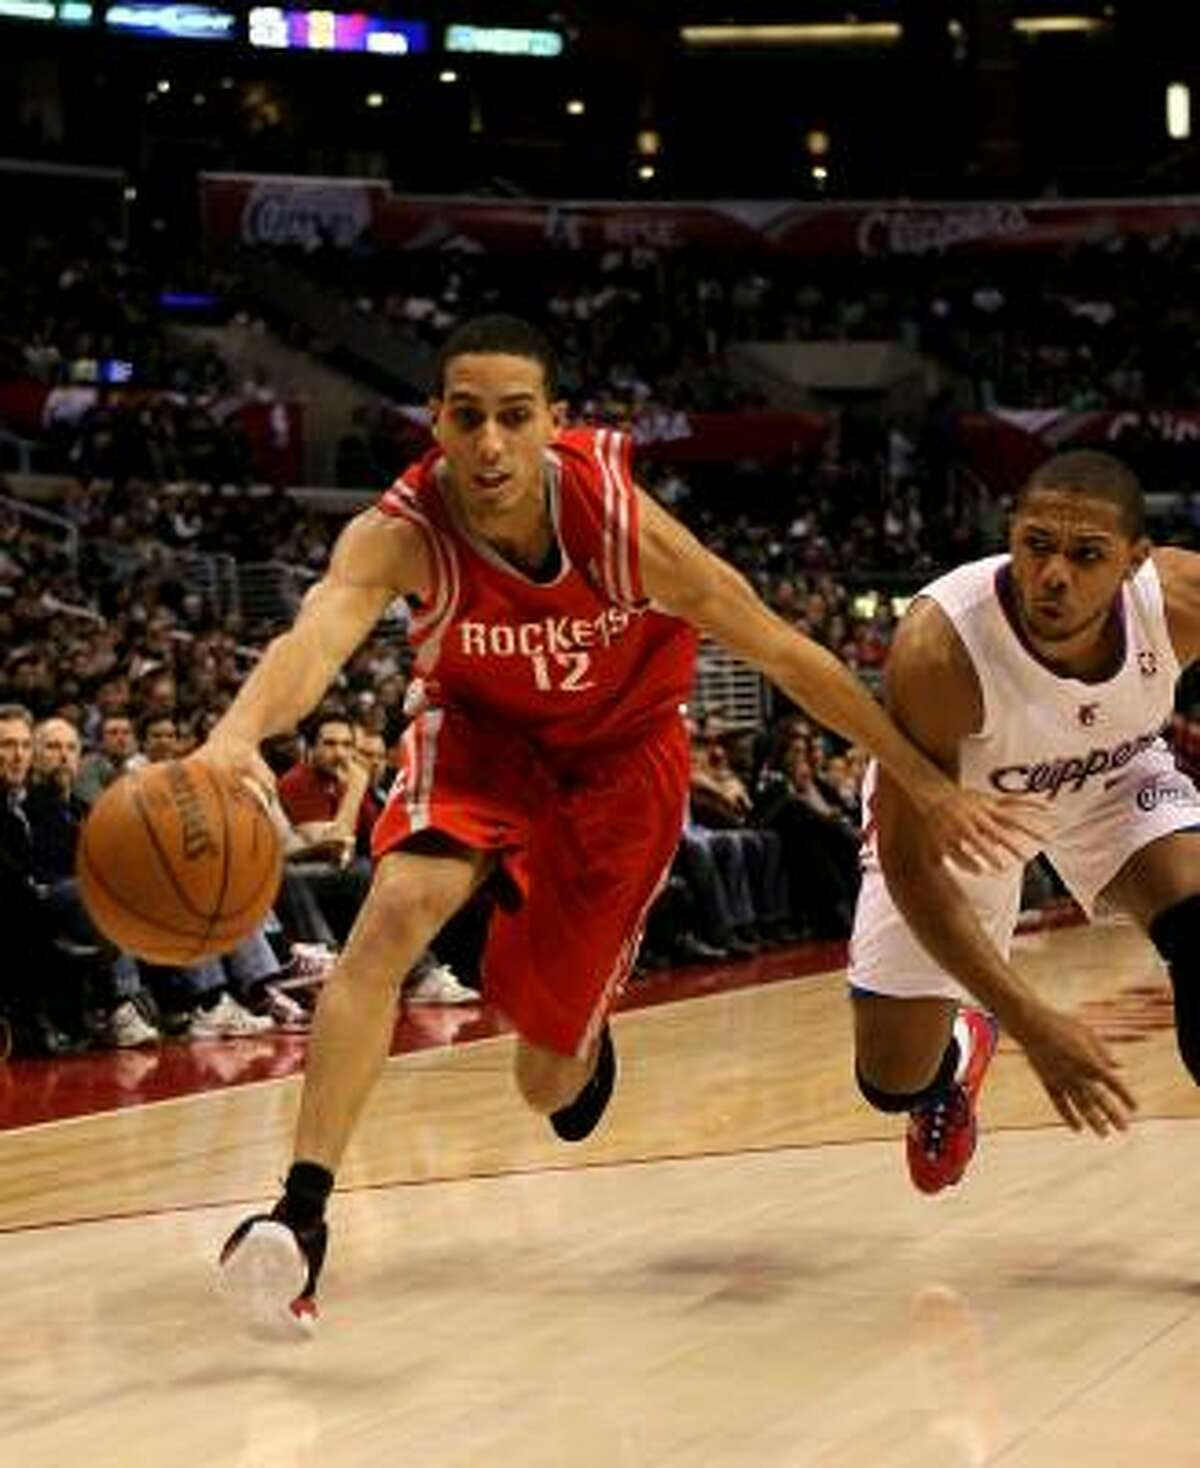 Dec. 22: Rockets 97, Clippers 92 Rockets guard Kevin Martin, left, scored a game-high 28 points on 8-of-19 shooting during Wednesday night's win over the Los Angeles Clippers at the Staples Center in Los Angeles. The Rockets improved to 14-15.